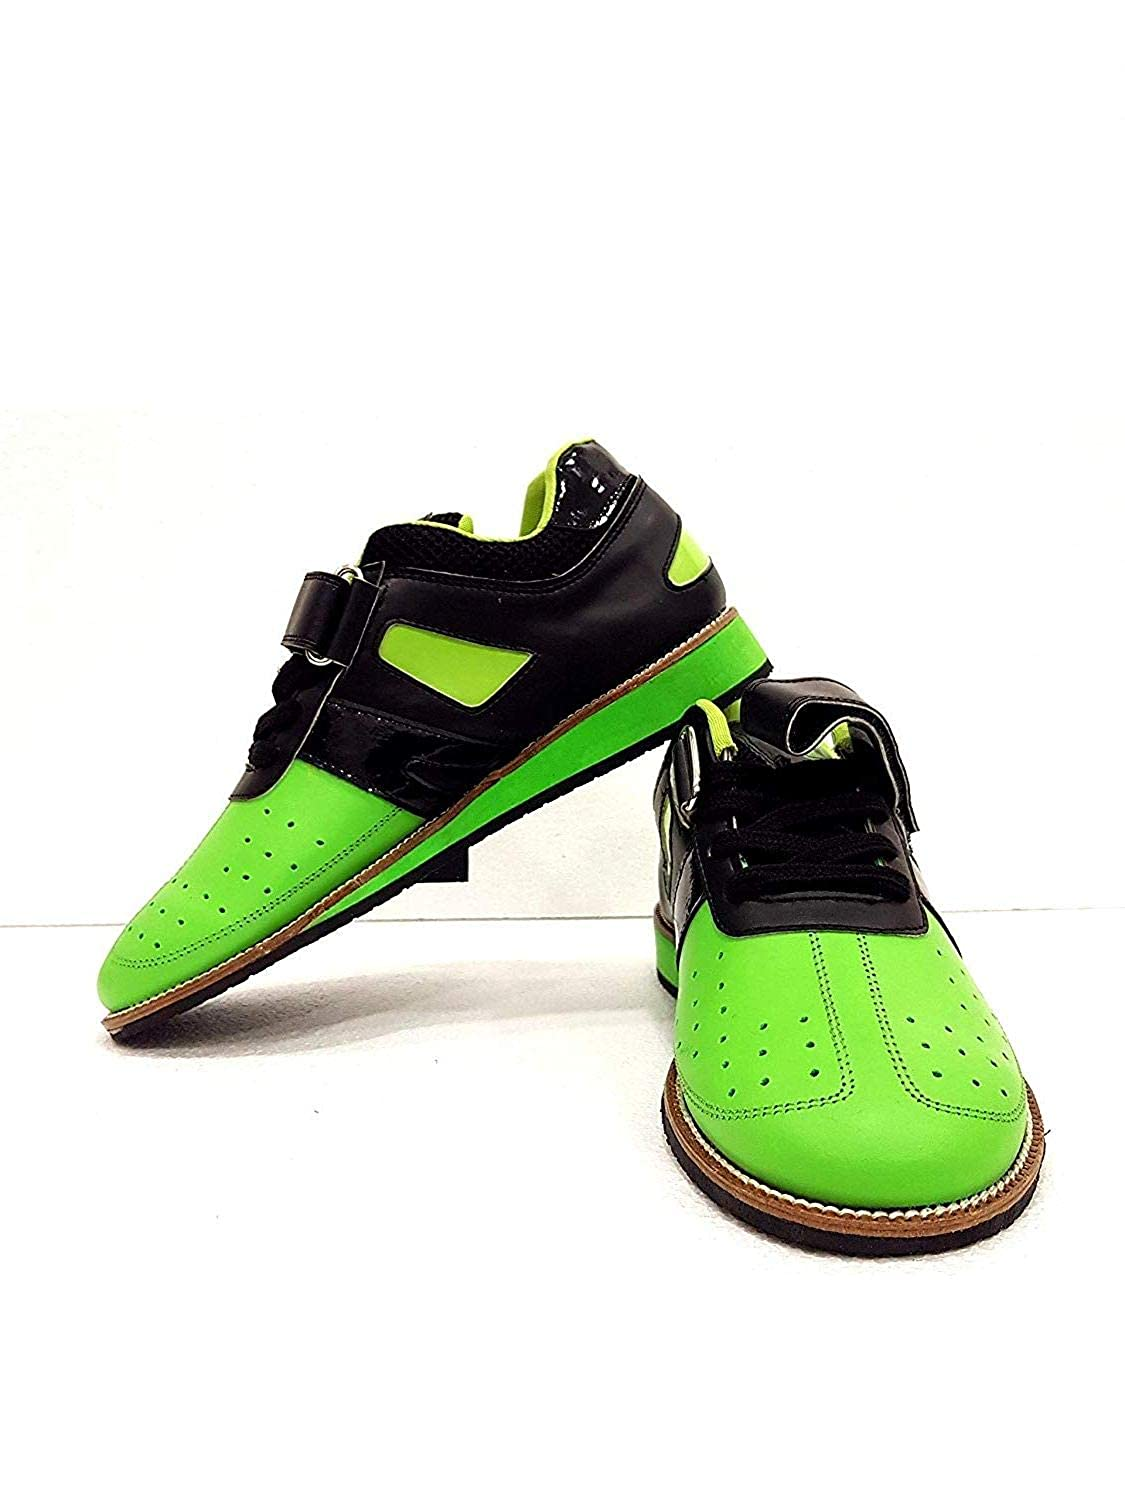 Weightlifting Green Shoes -4 at Amazon